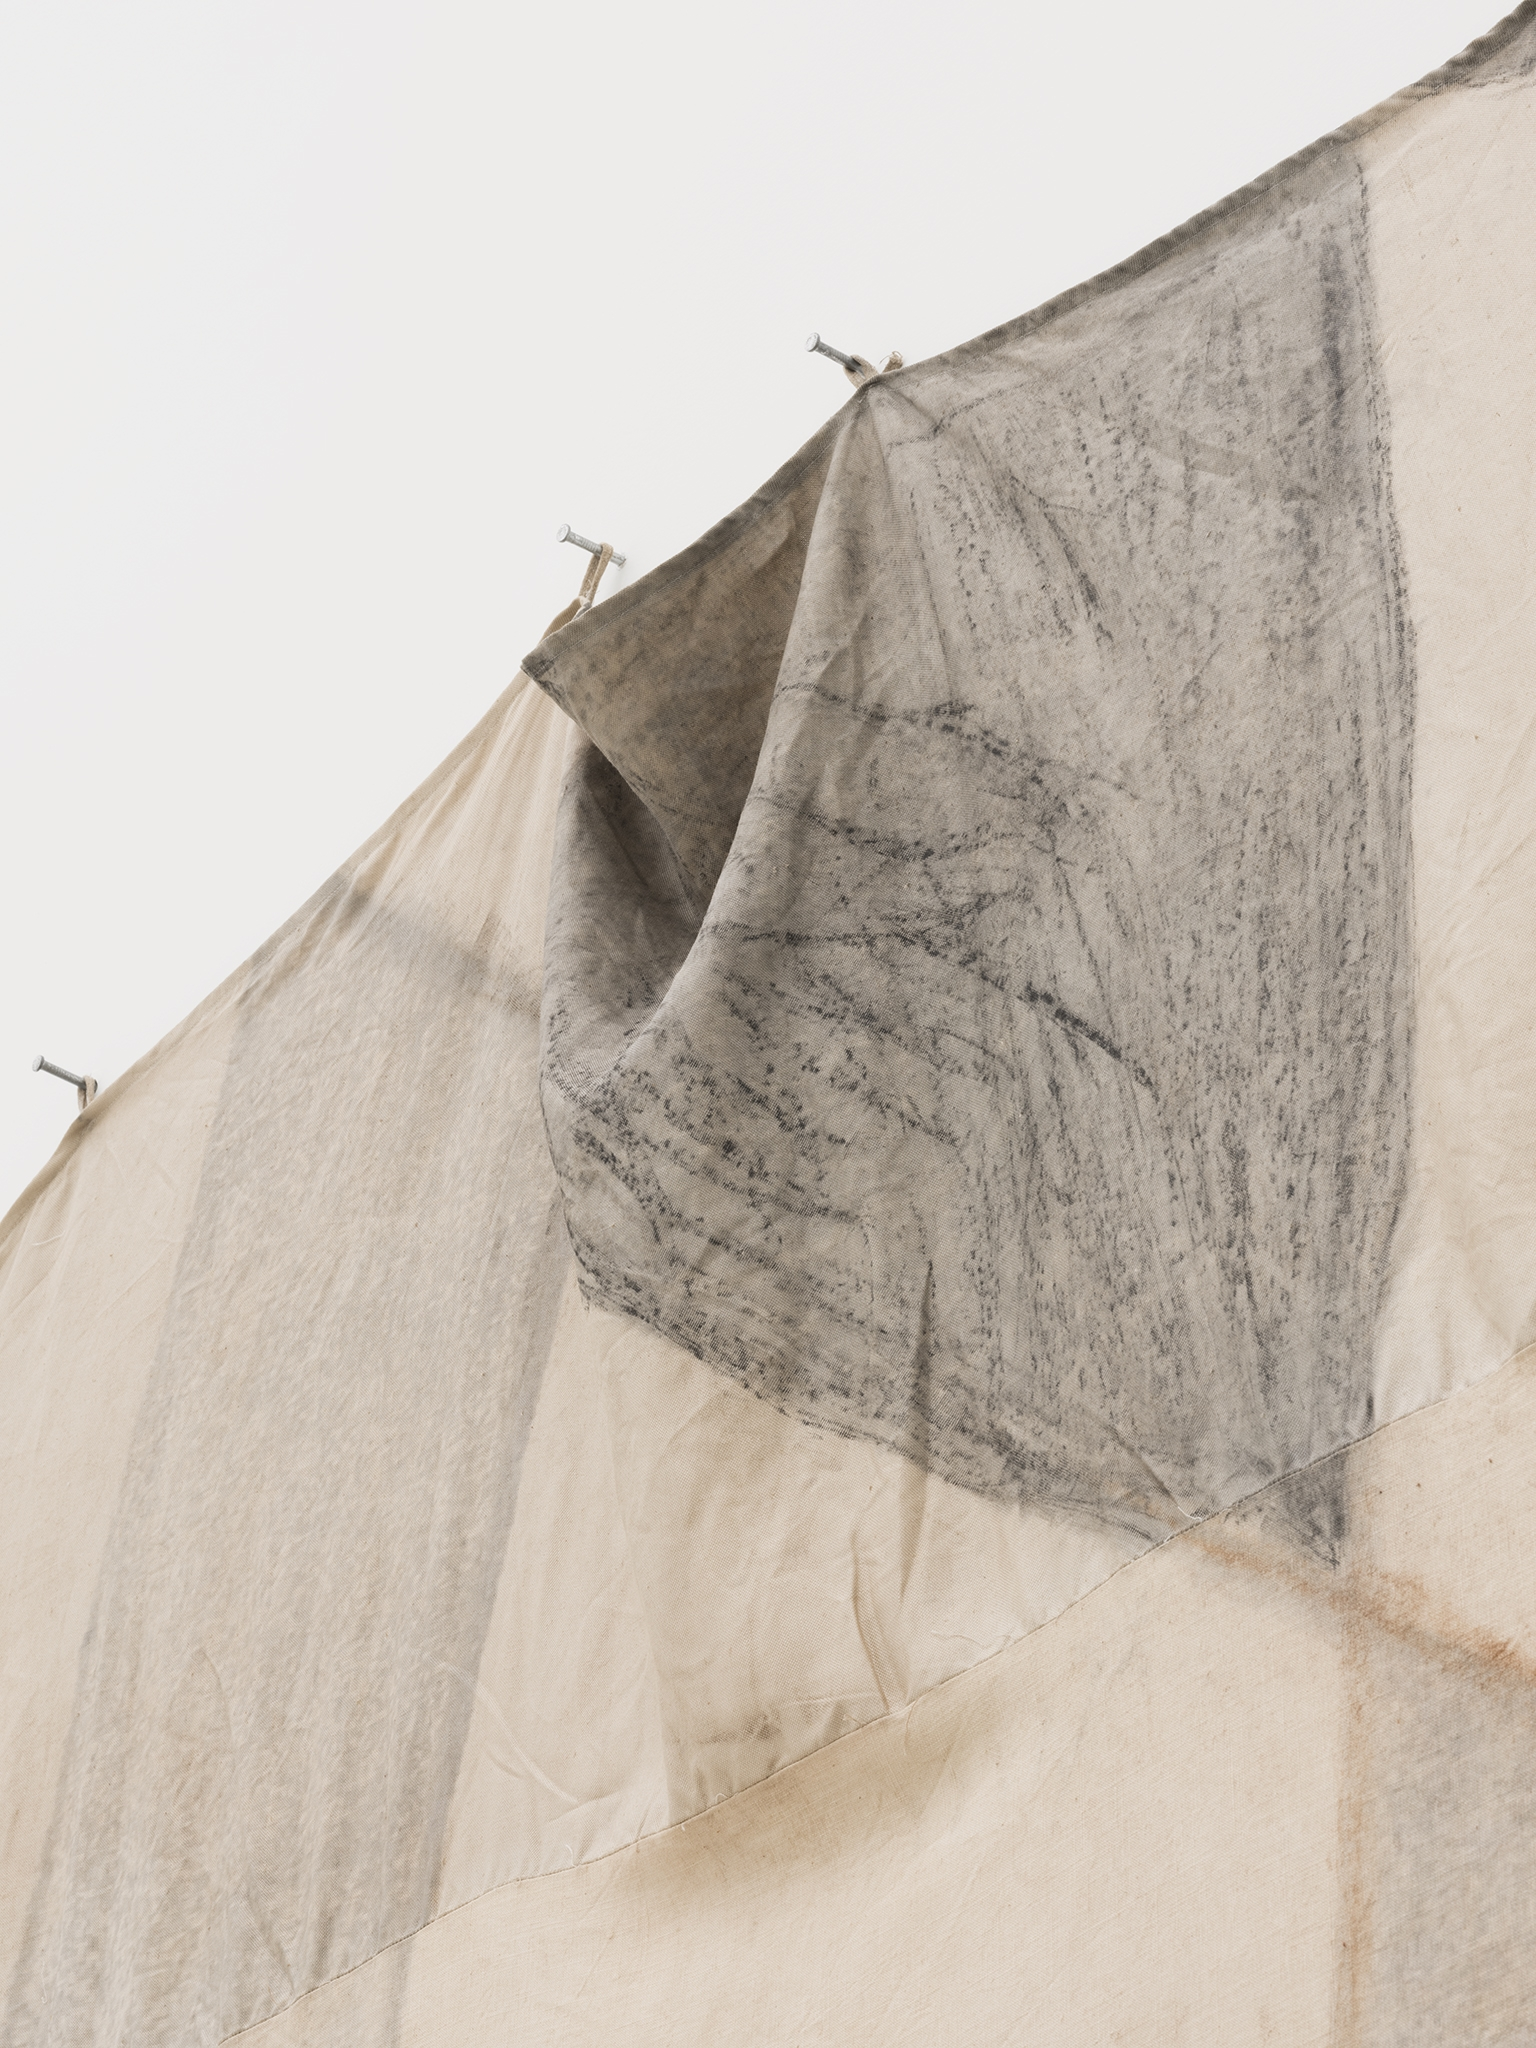 ​Duane Linklater, Tipi cover for unknown future horizon / Indian lemonade diamond for Mina (detail), 2018, digital print on hand-dyed linen, cedar, sumac, charcoal, nails, 113 x 213 in. (287 x 541 cm)​​ by